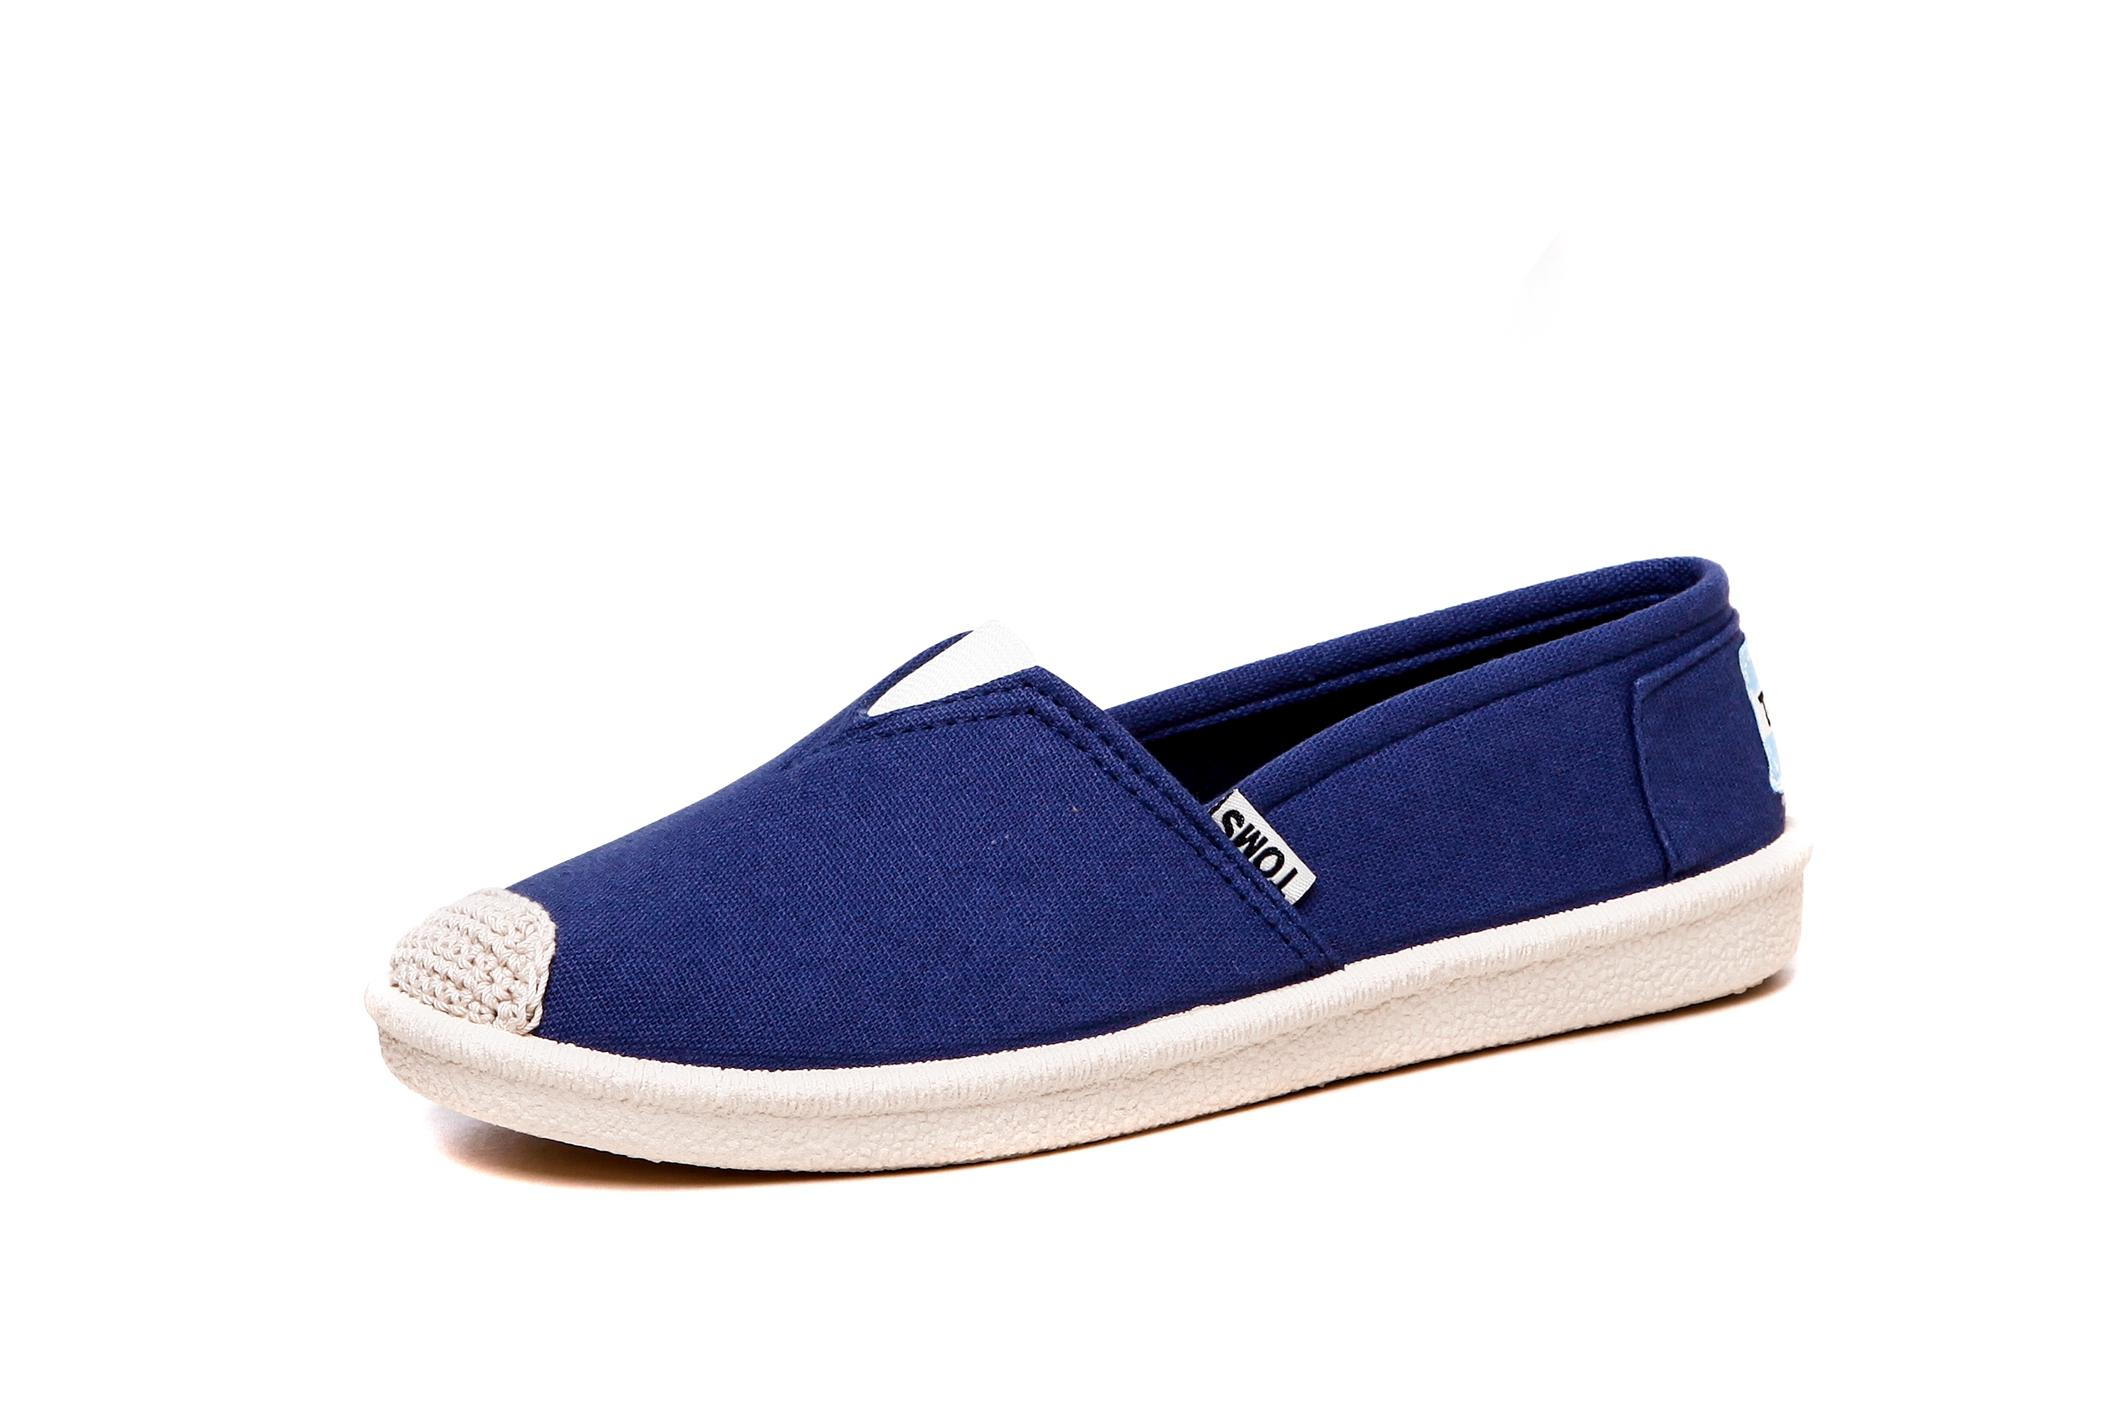 3e45f4ae9d614b Loafers for Men for sale - Slip-On Shoes for Men Online Deals ...